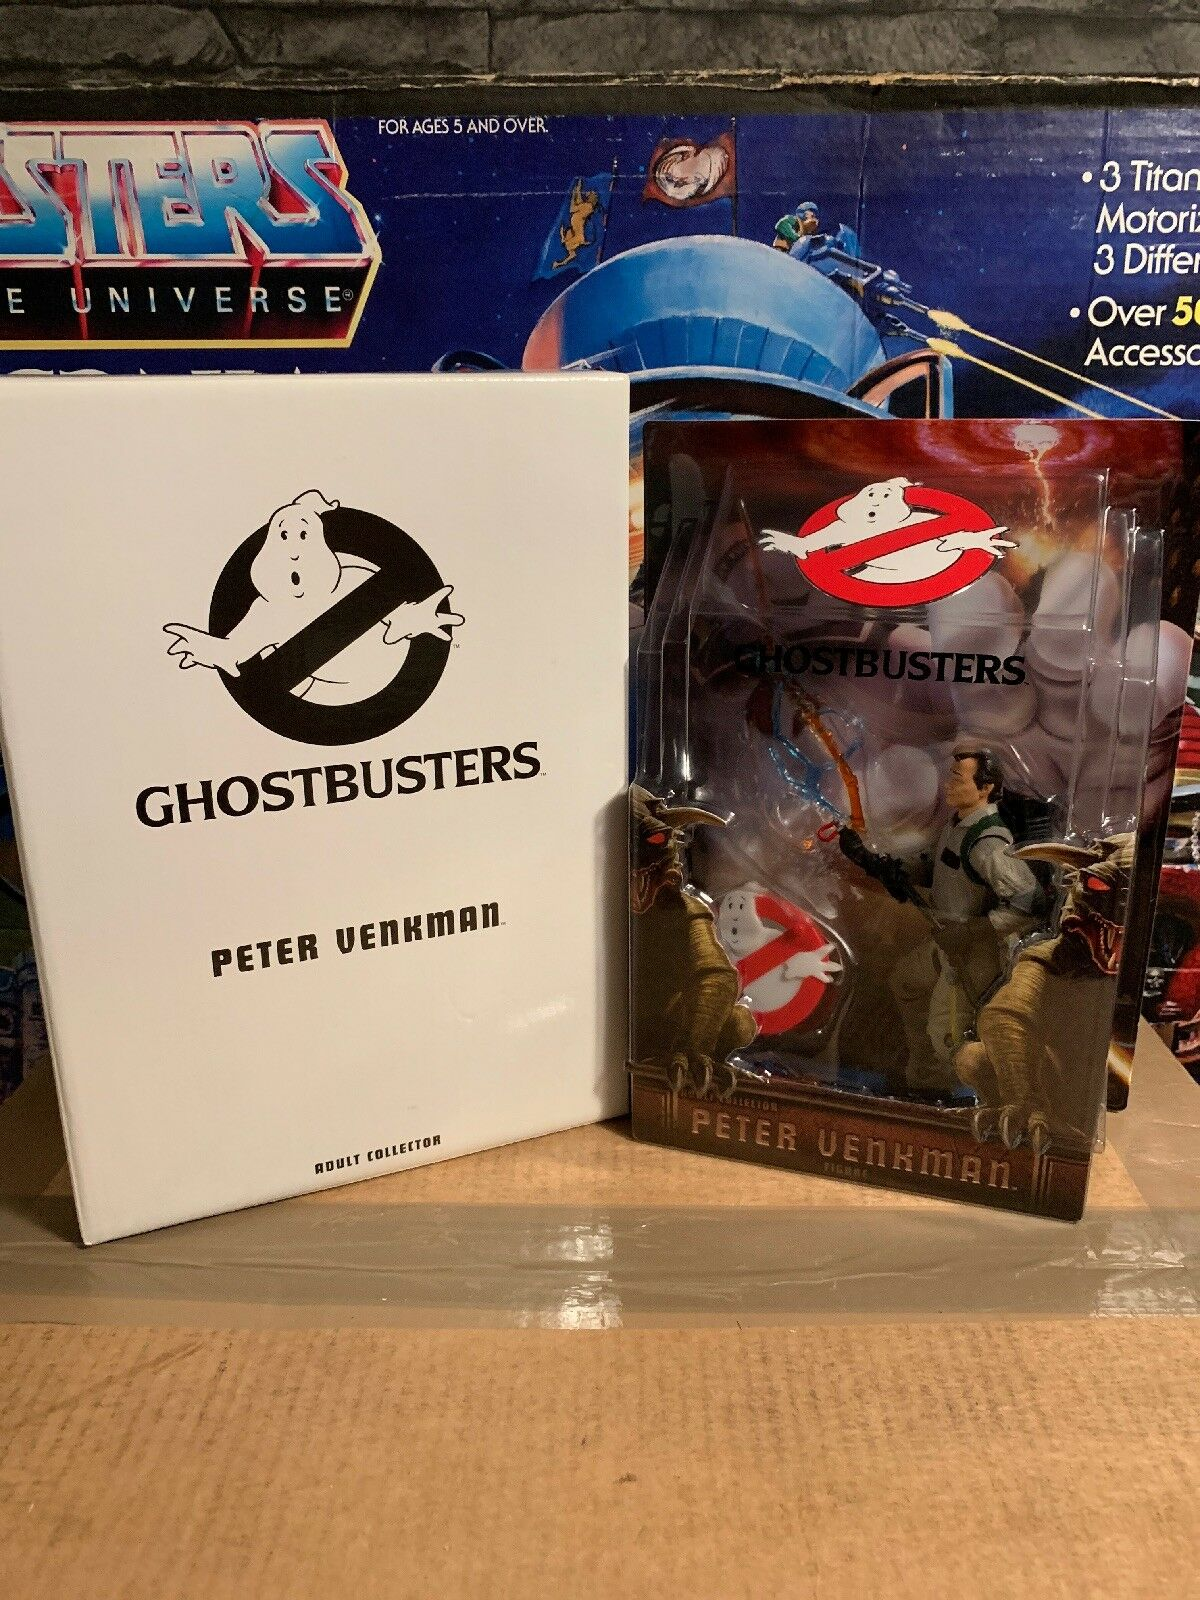 Matty Collecter Ghostbusters Peter Venkman Adult Collector New